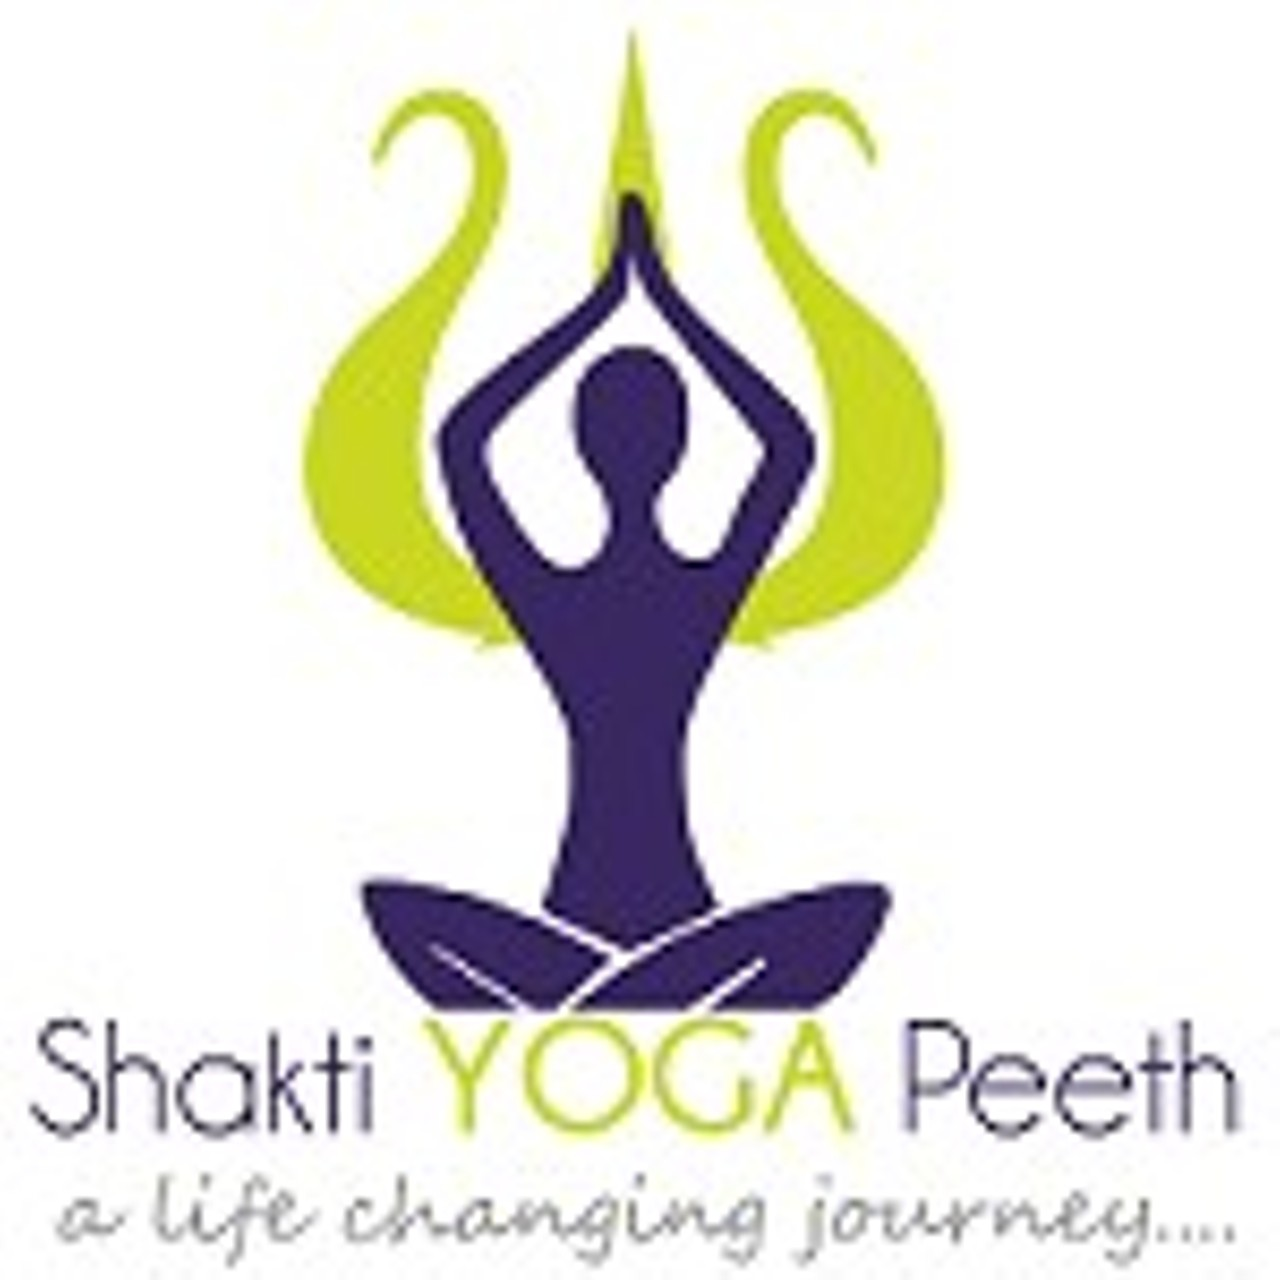 Shakti Yoga Peeth | East Bay Express